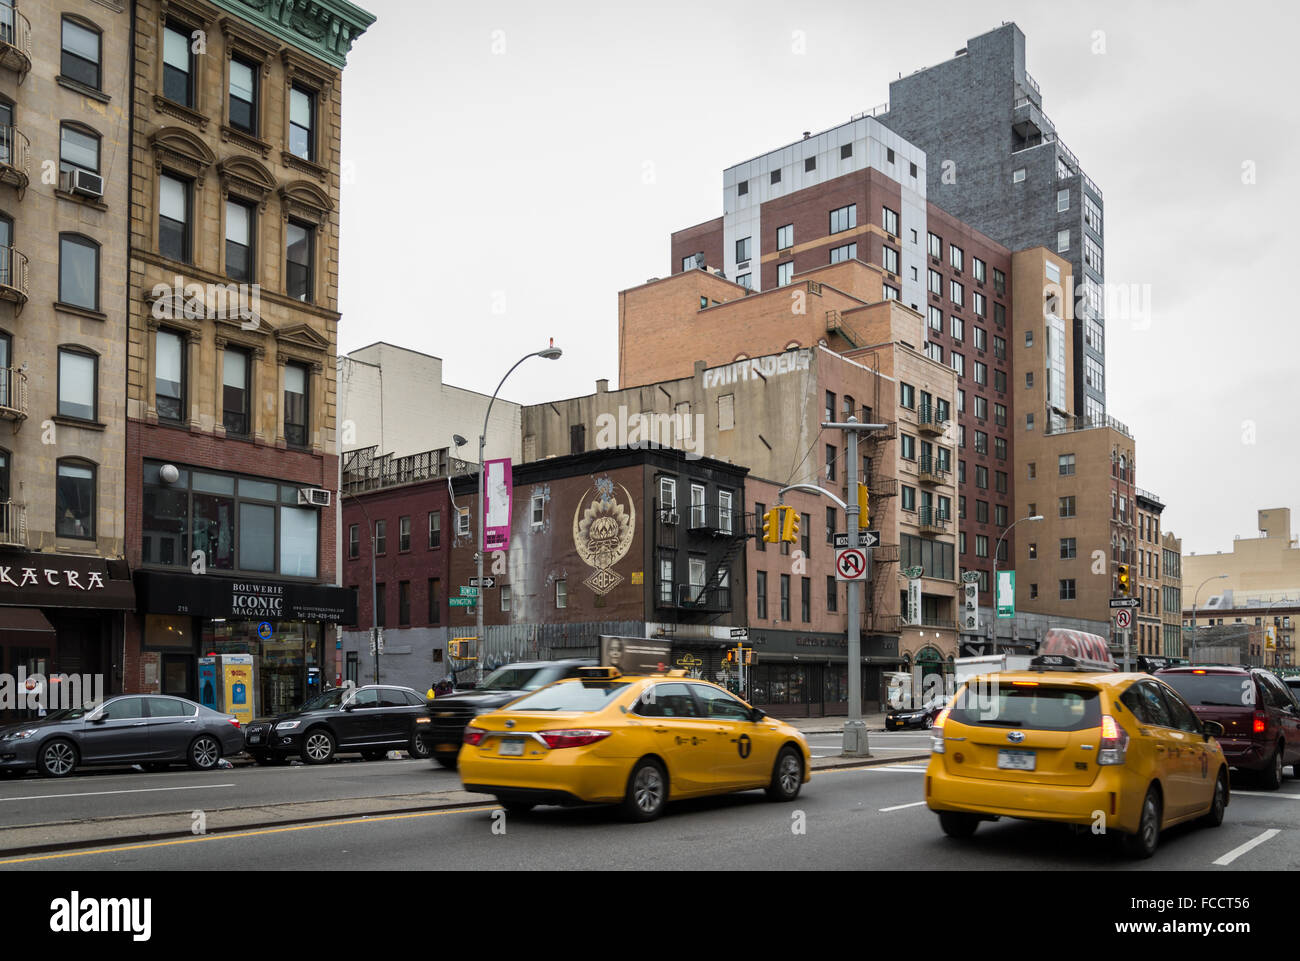 Street view of the Bowery in Lower East Side, New York City. With yellow taxi cabs, architecture and graffiti. - Stock Image